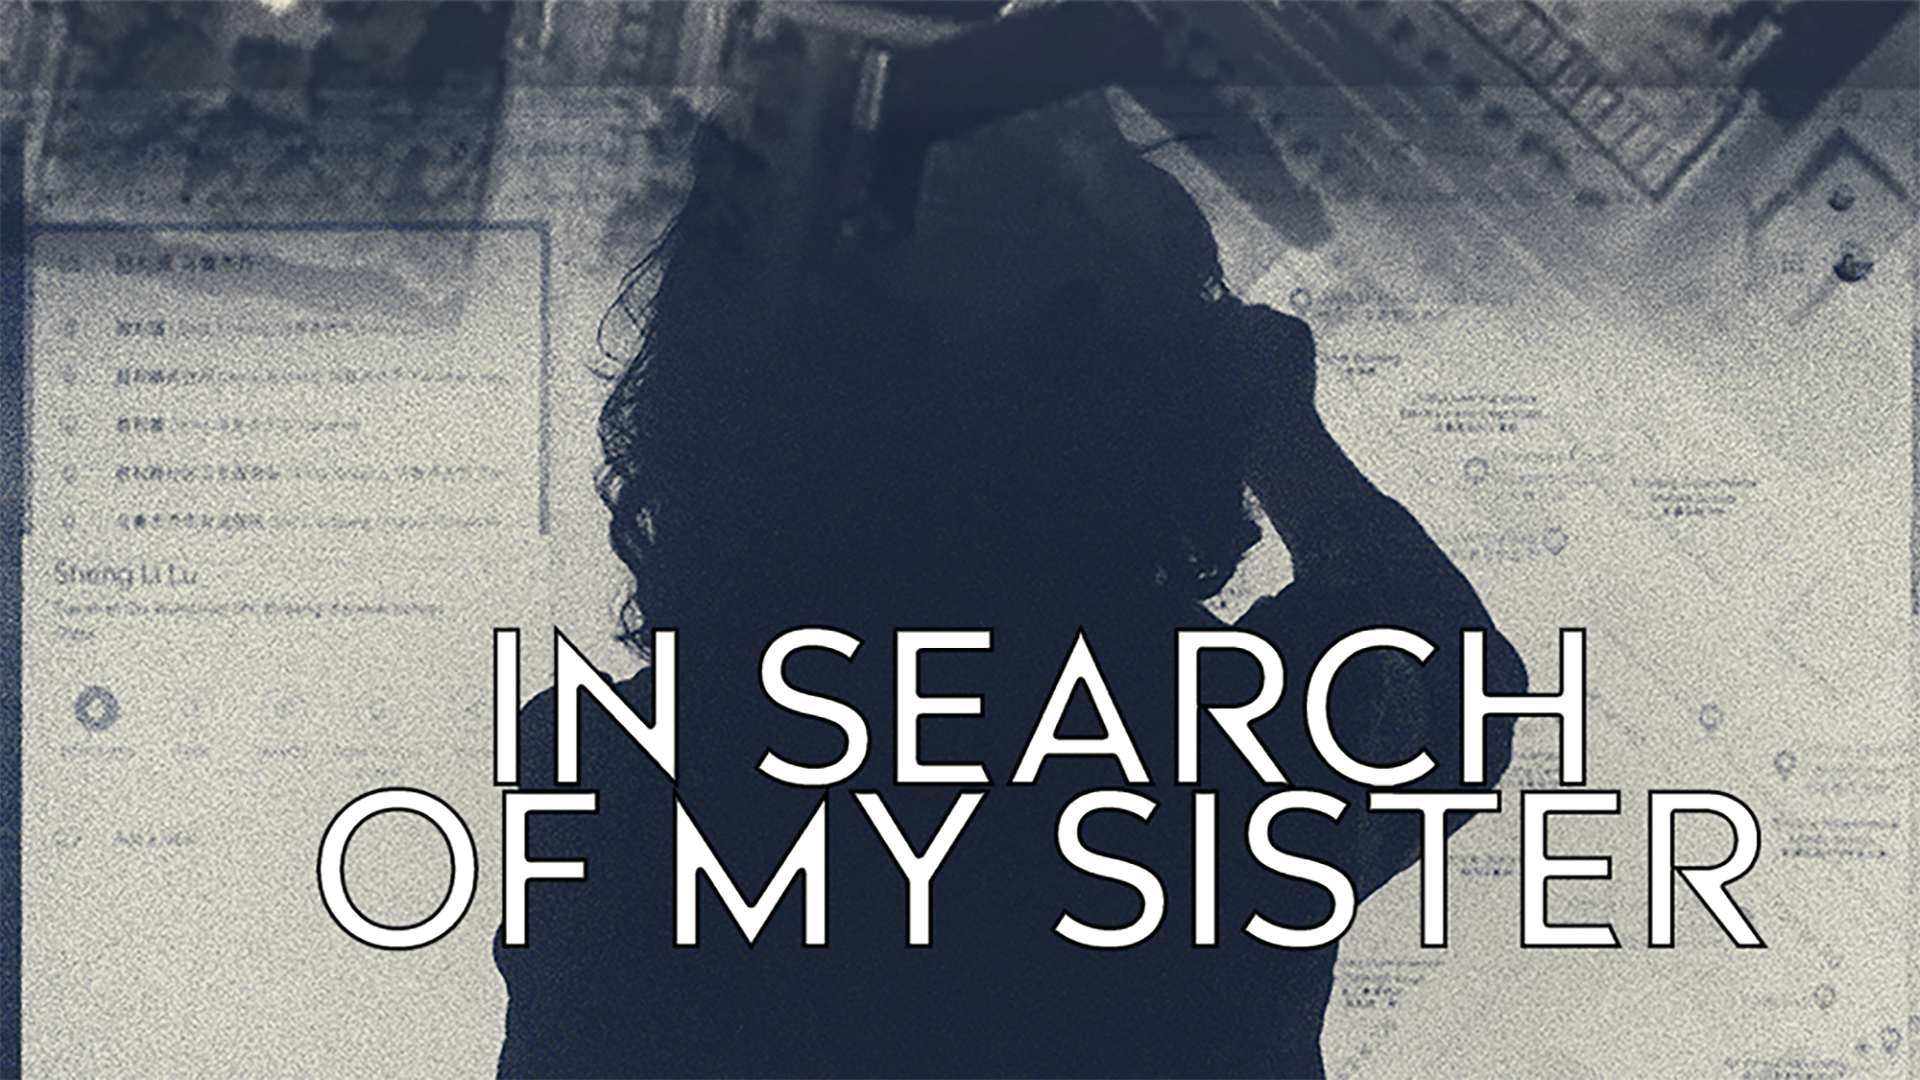 In Search of My Sister